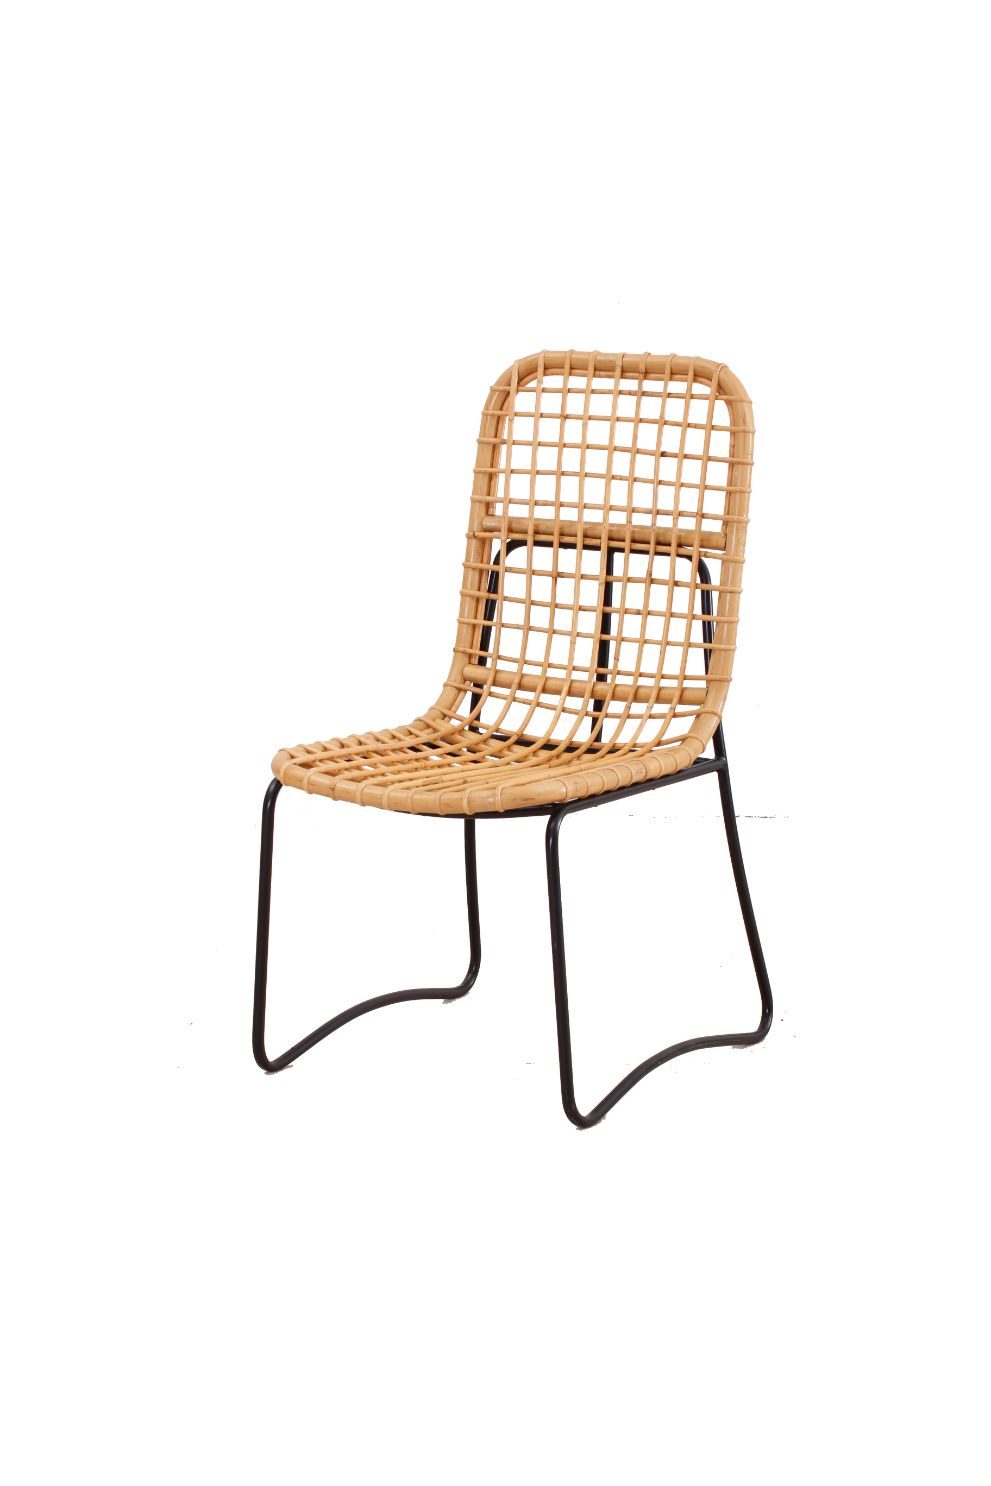 Rattan Furniture 63